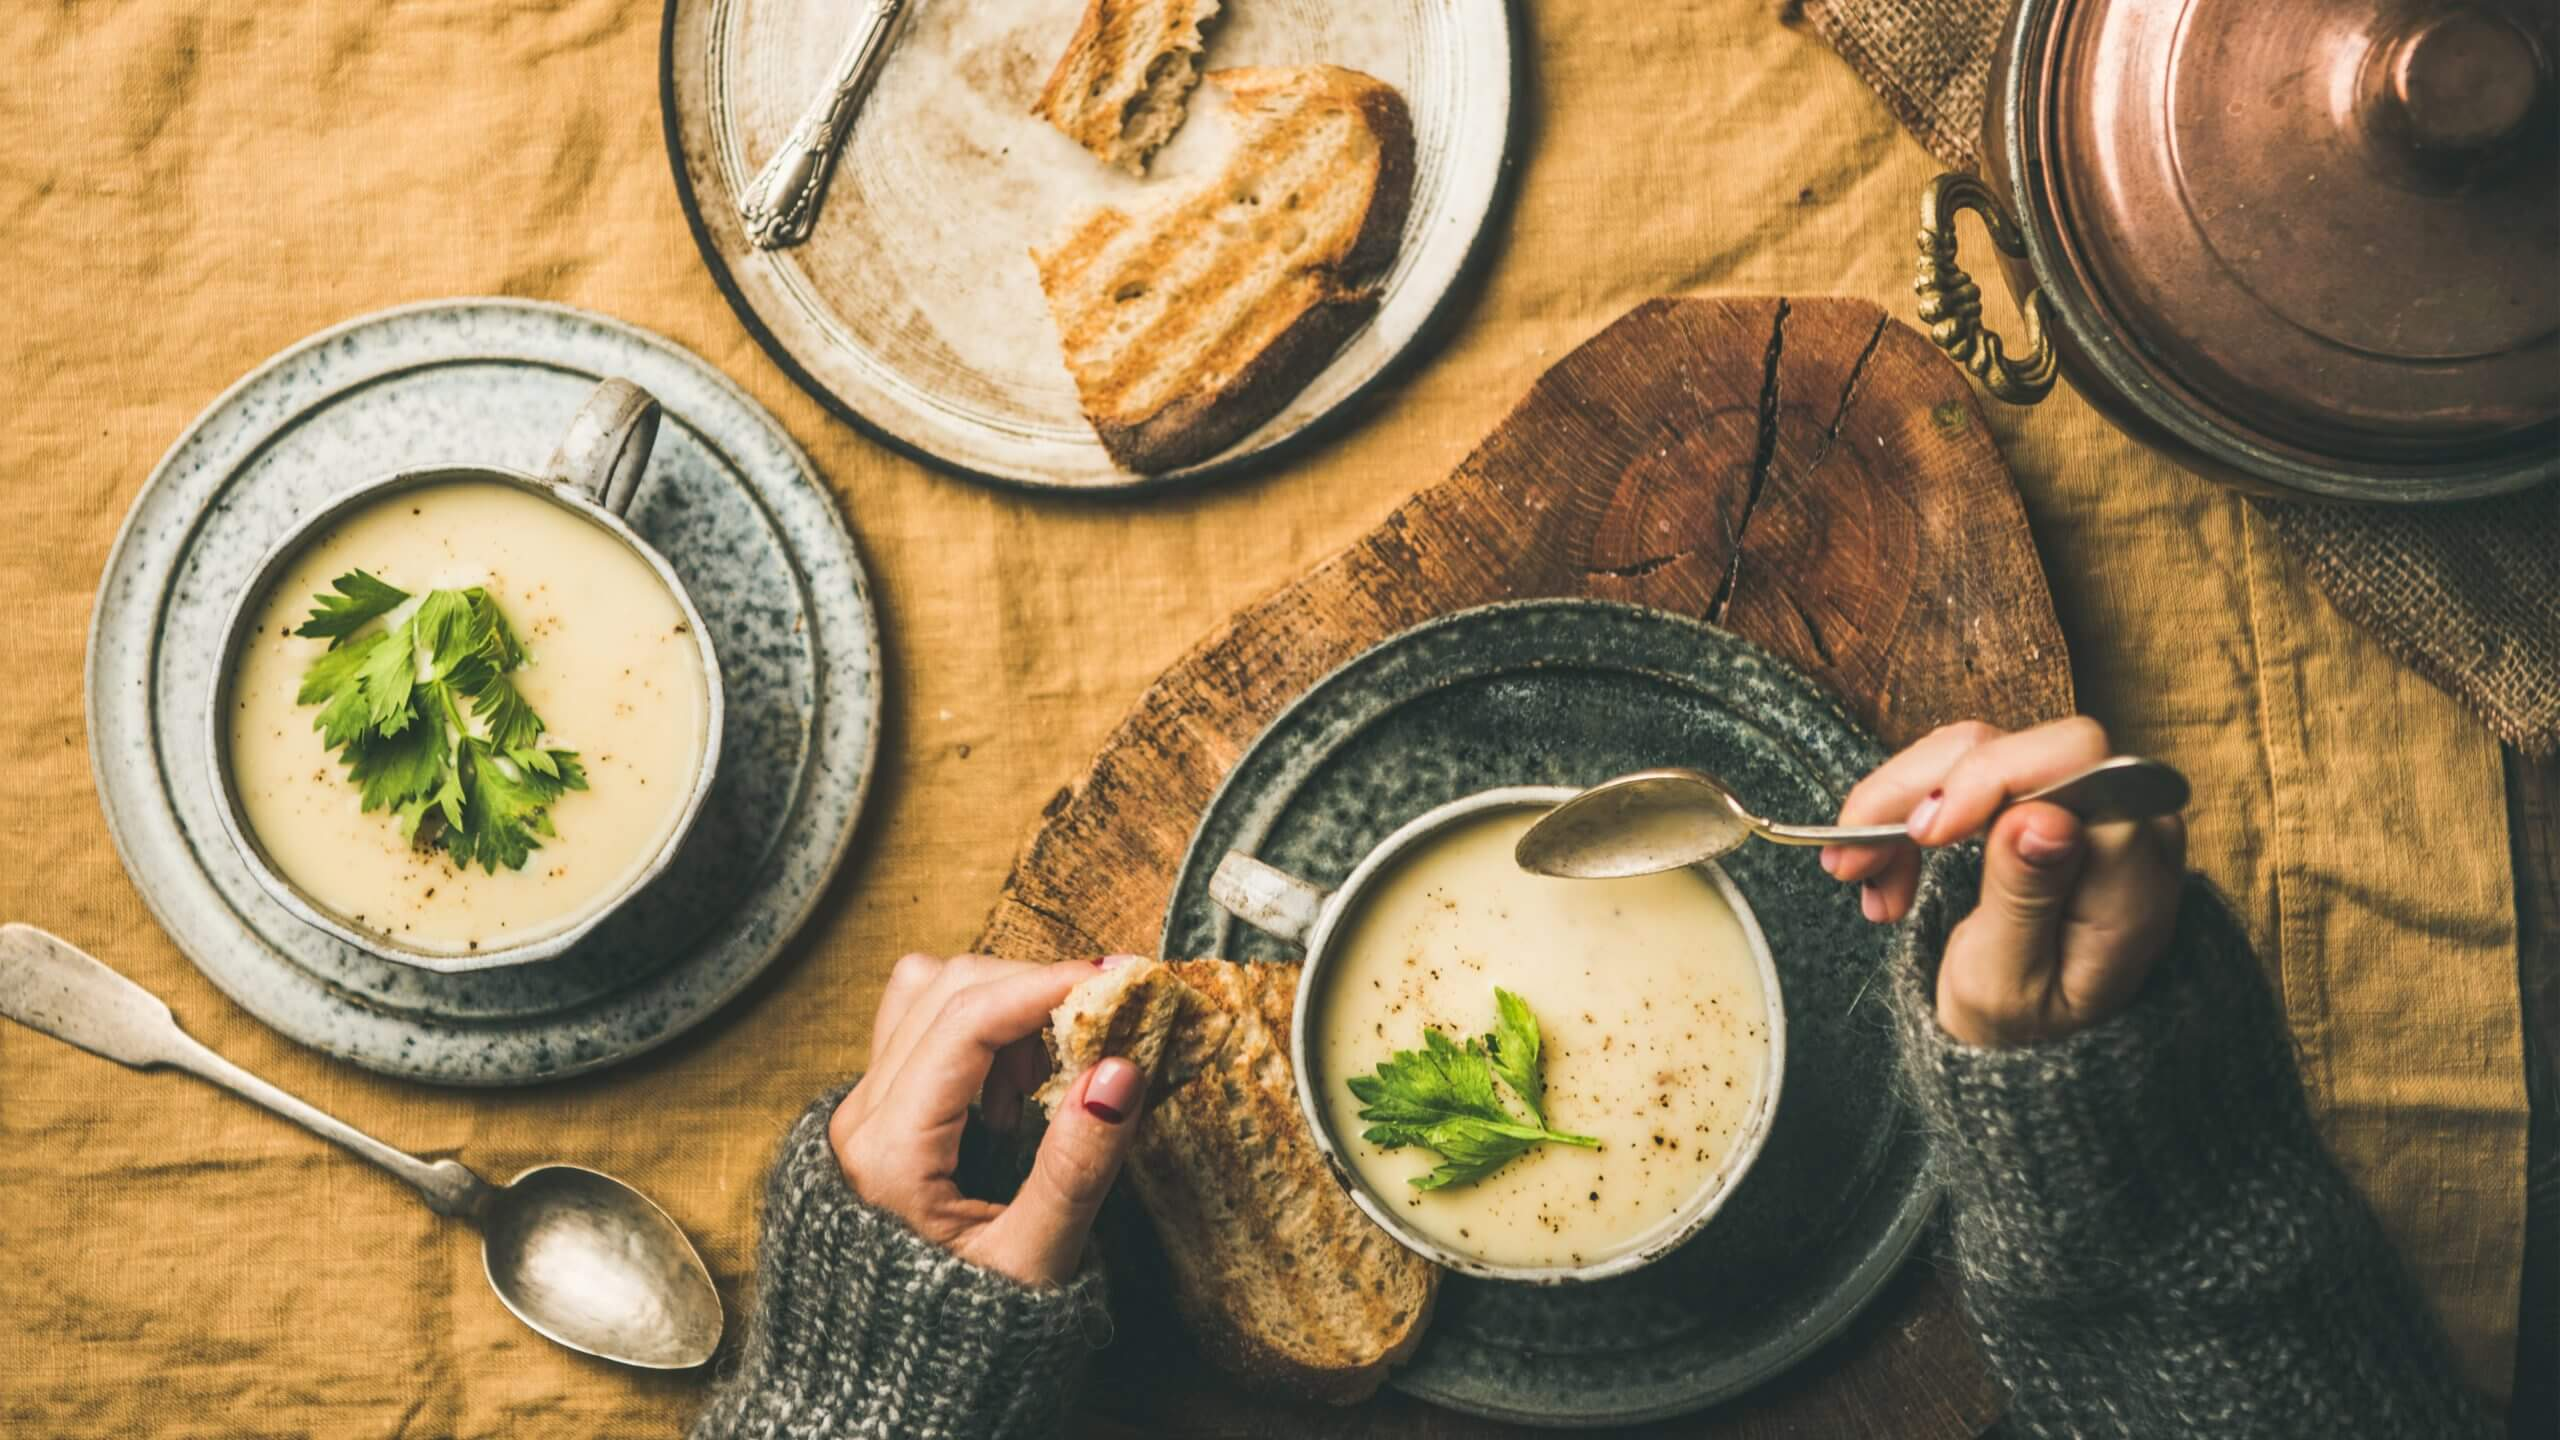 A woman enjoying a bowl of creamy soup with a side of toasted bread.